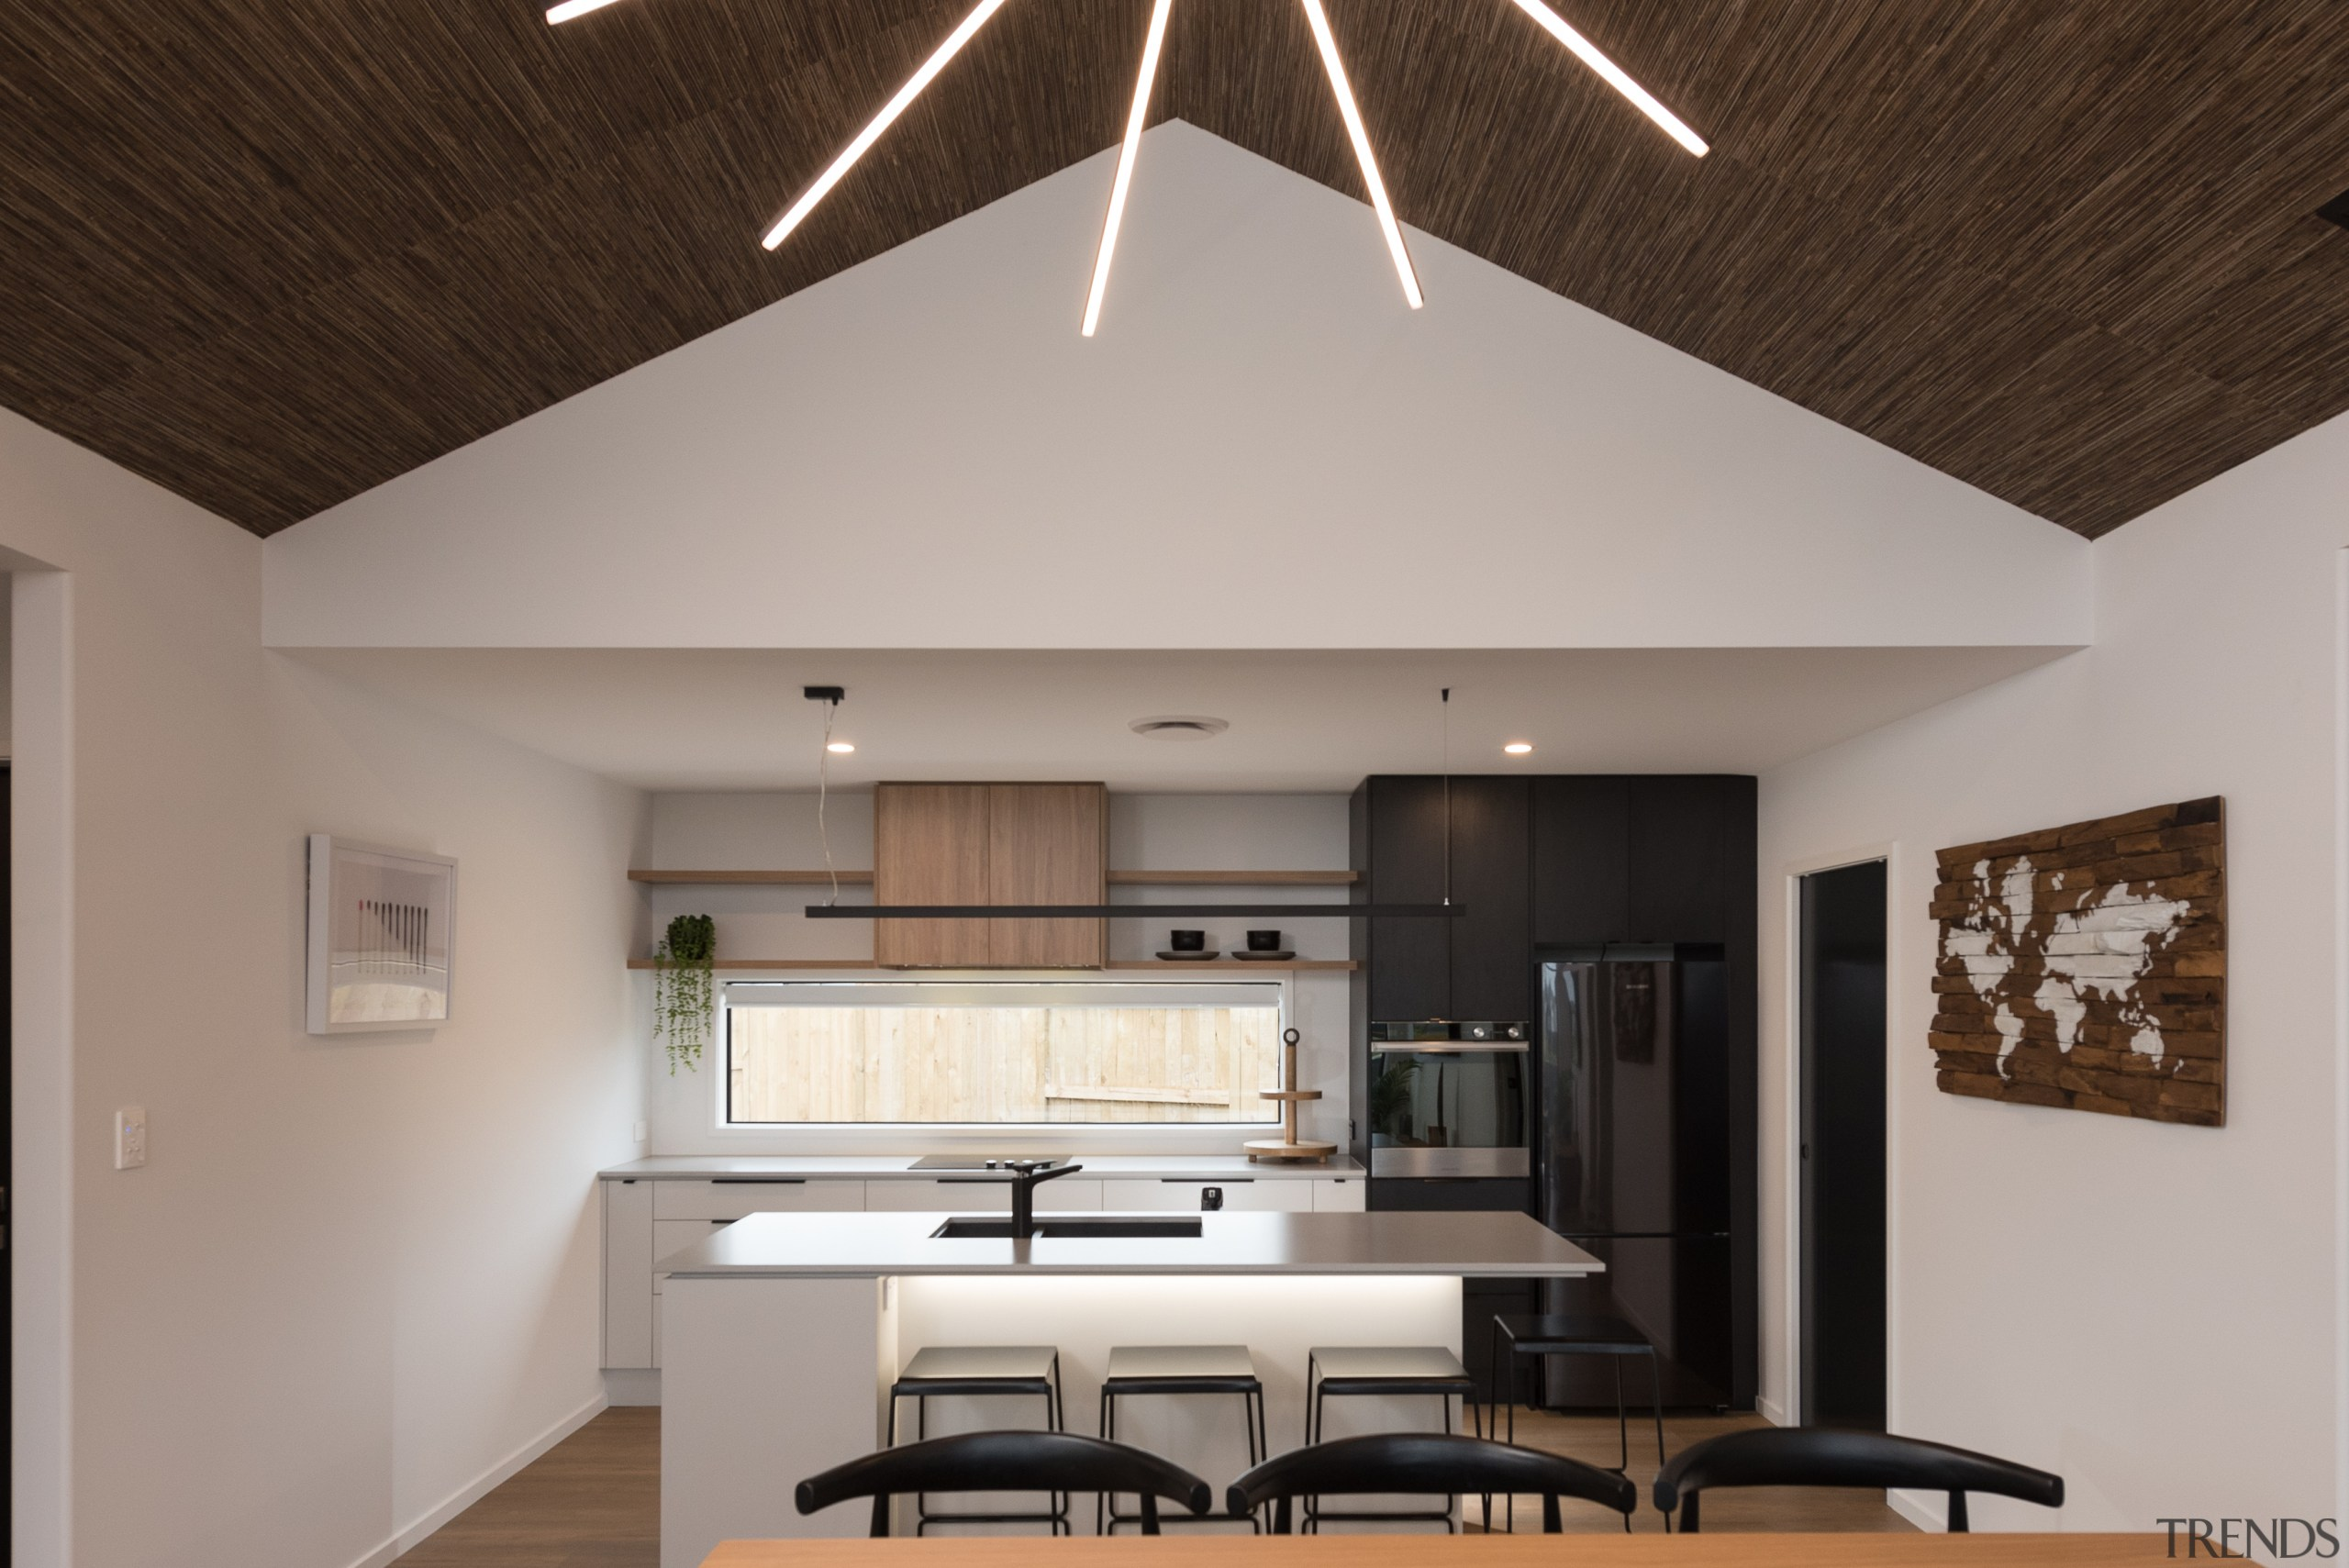 A dropped ceiling helps define the kitchen beside